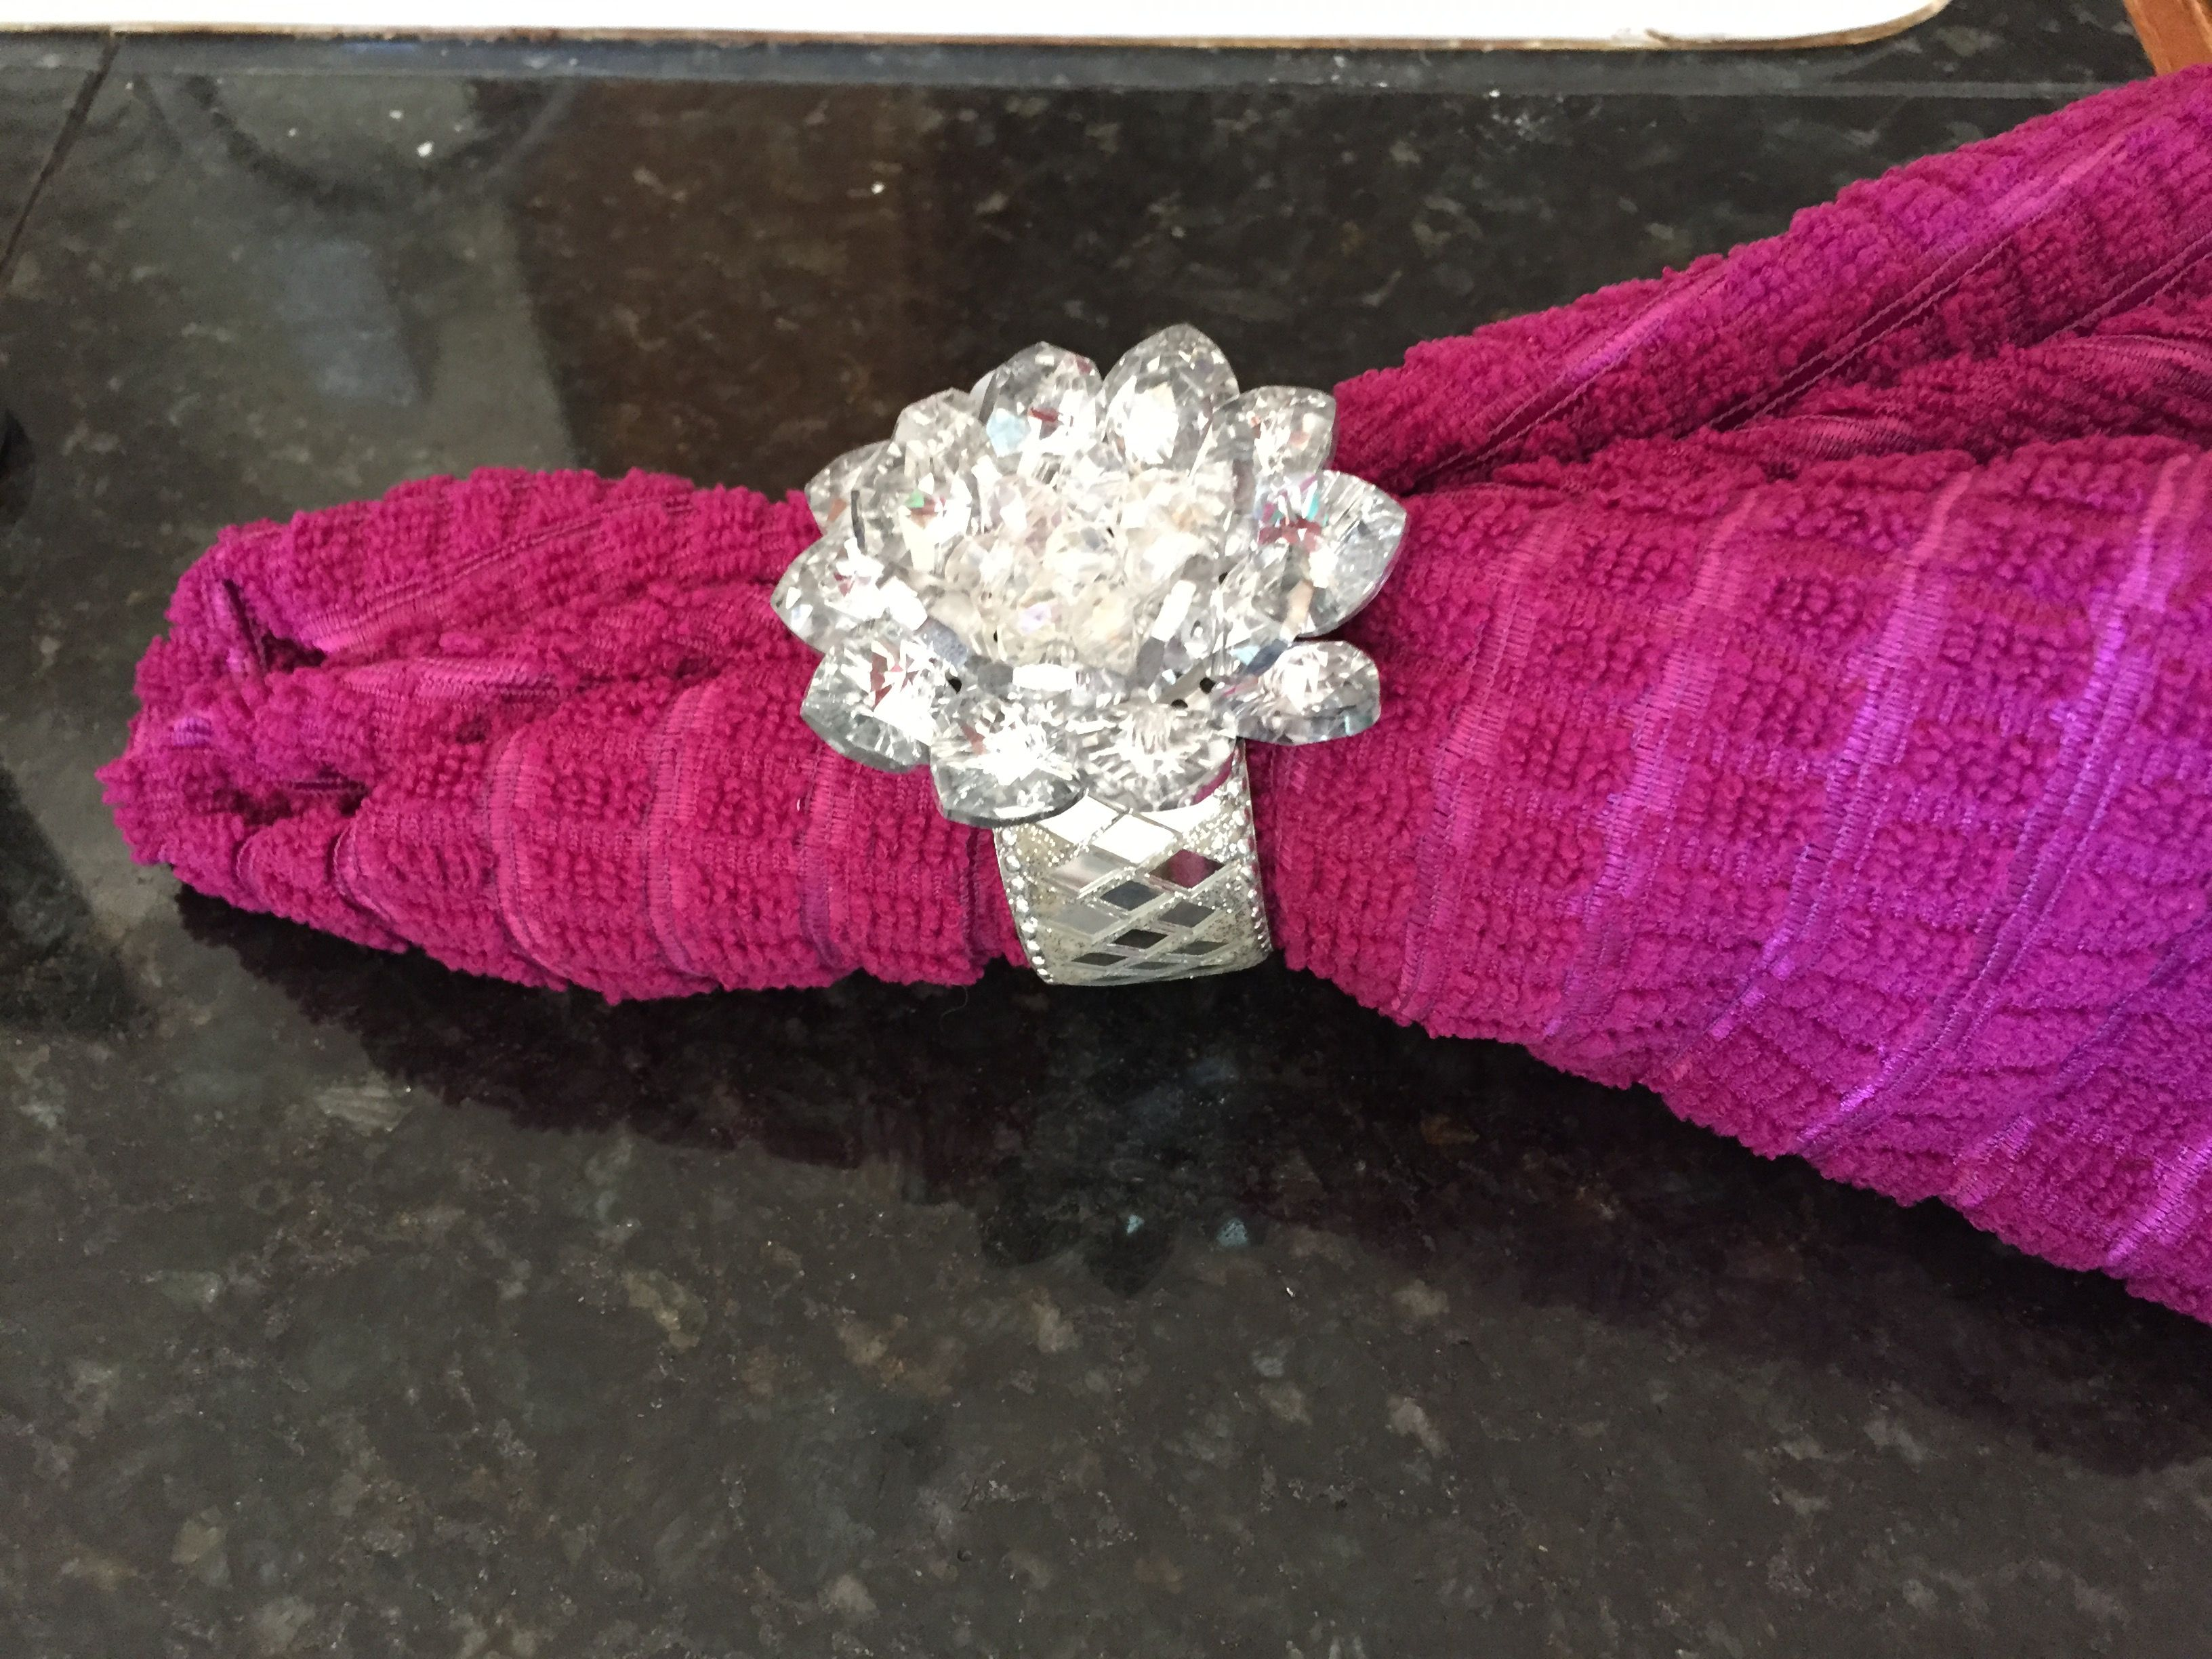 Crystal Broach From Hobby Lobby 10 And Mirror Napkin Rings From Bed Bath And Beyond 10 Rope Bracelet Jewelry Crystals